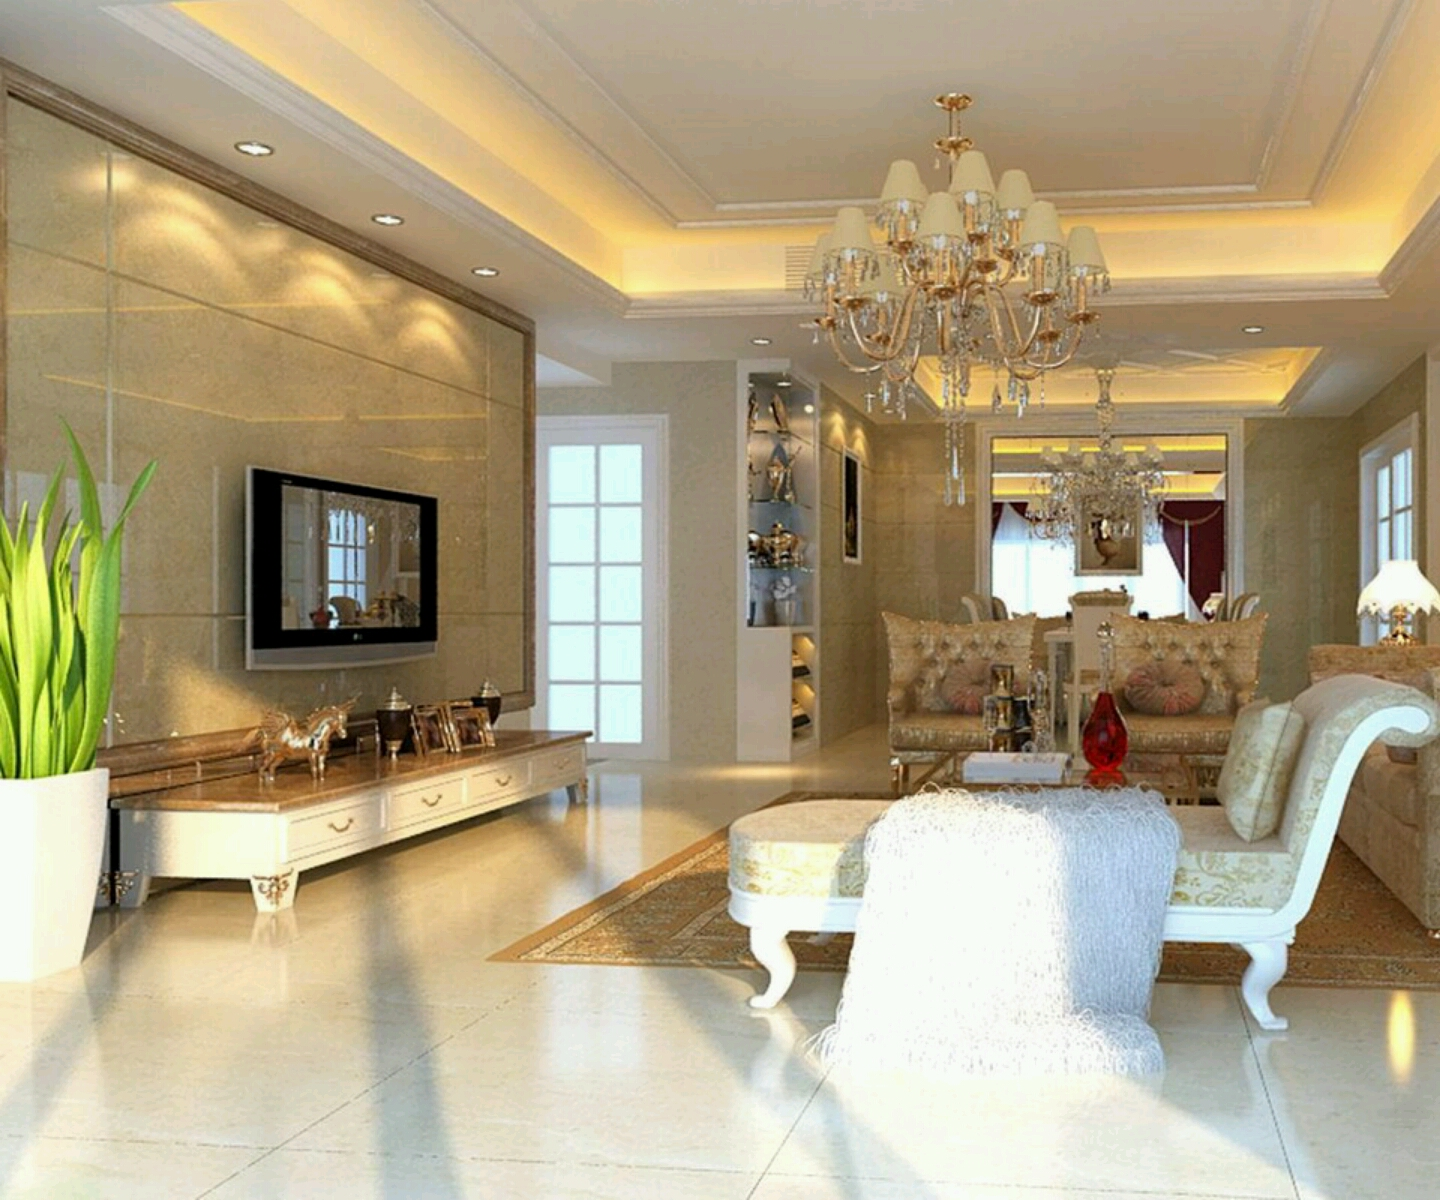 New home designs latest luxury homes interior decoration for Internal home decoration